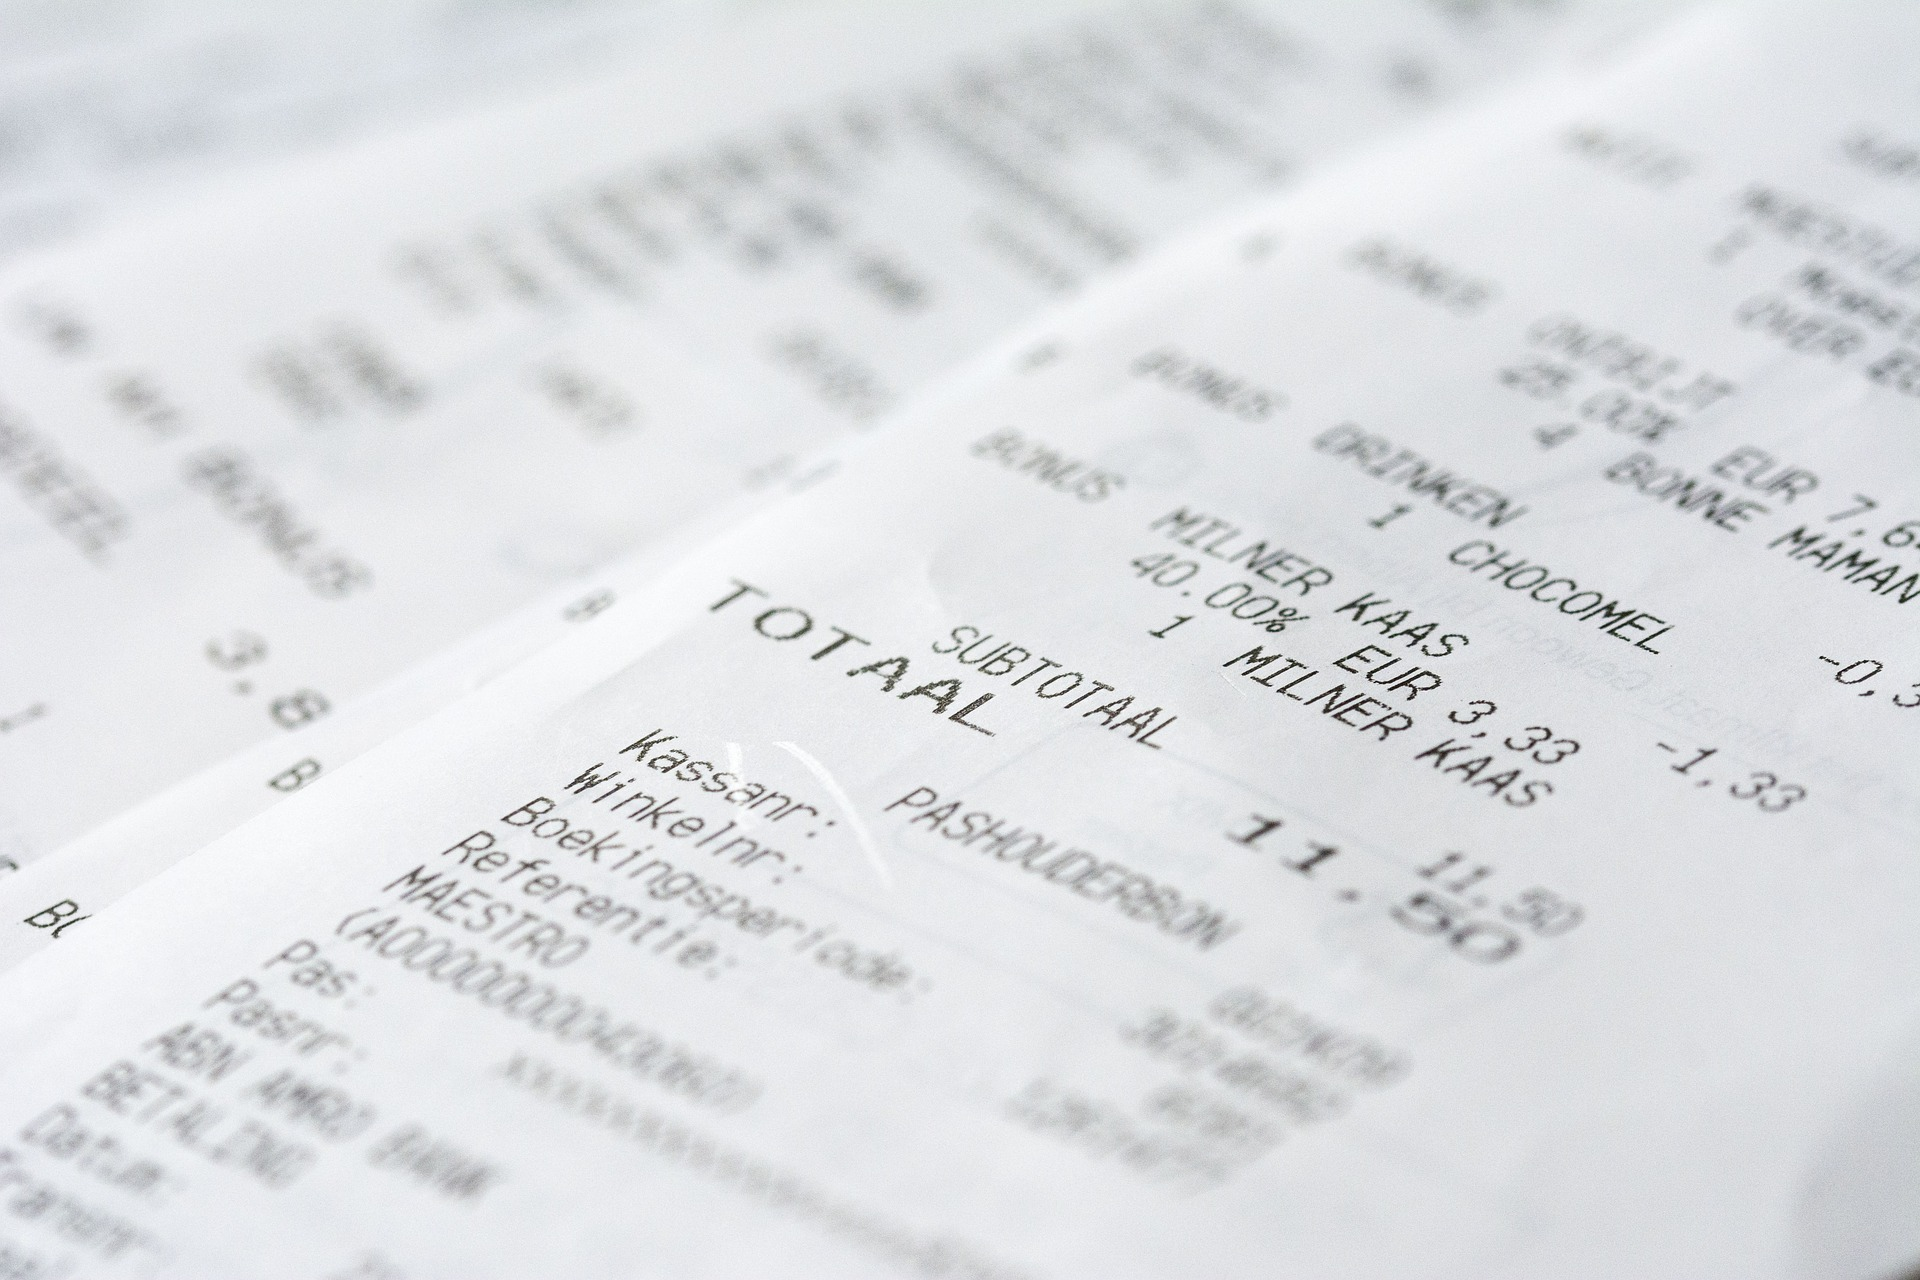 Receiptless Transactions in Korea: Why Just Skip Signatures, Skip Credit Card Receipts